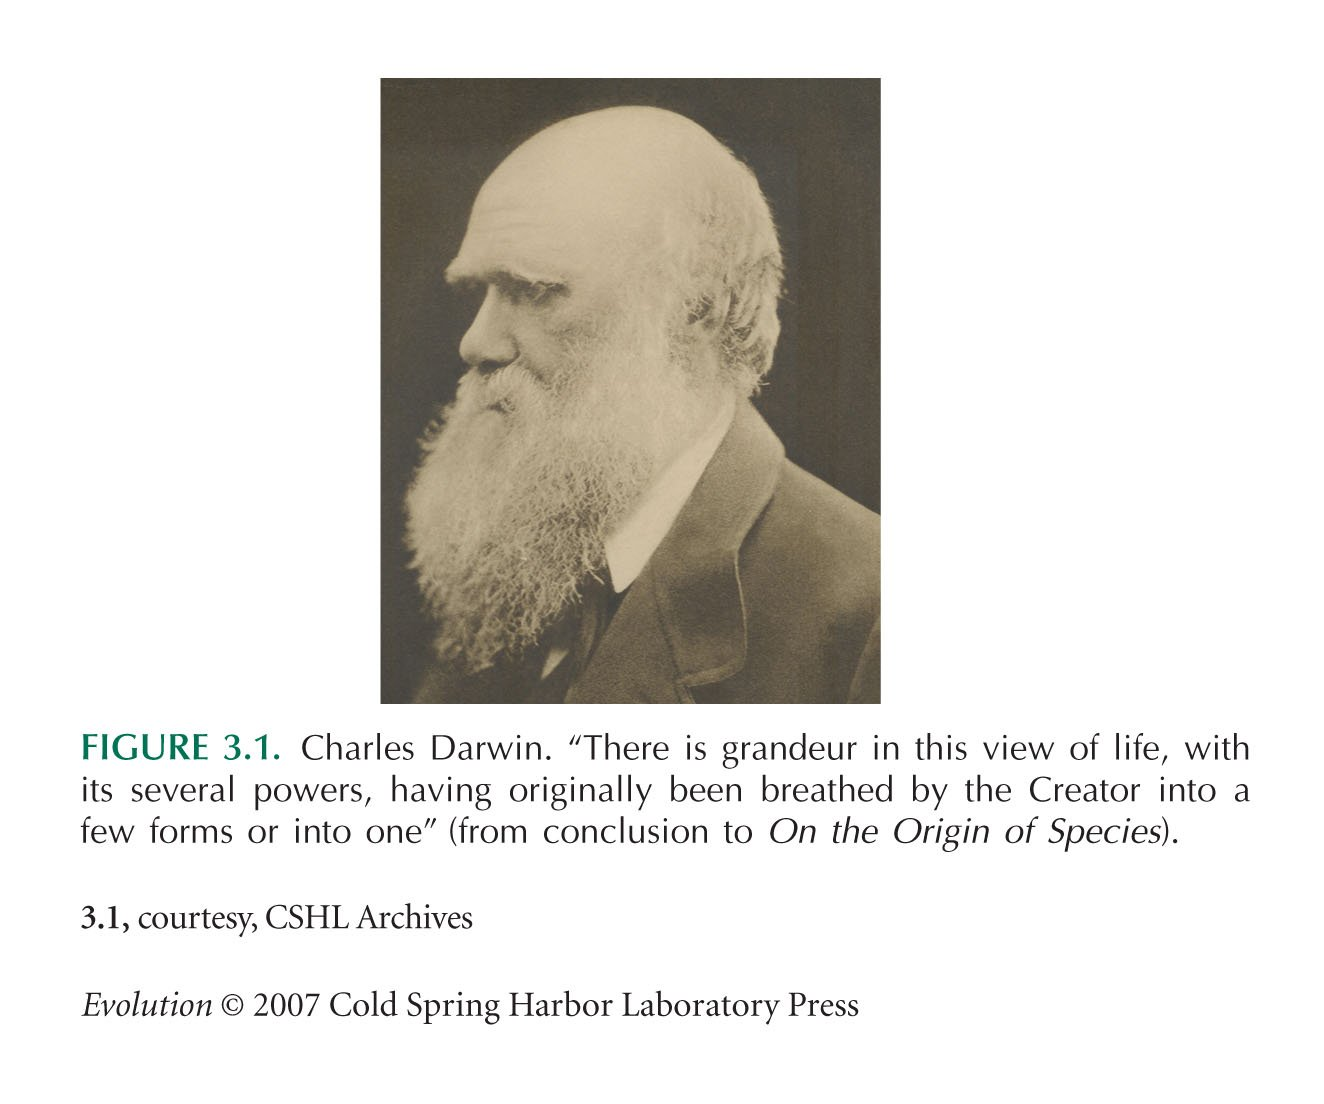 Charles darwin evolution pictures The Voyage of the Beagle - Wikipedia